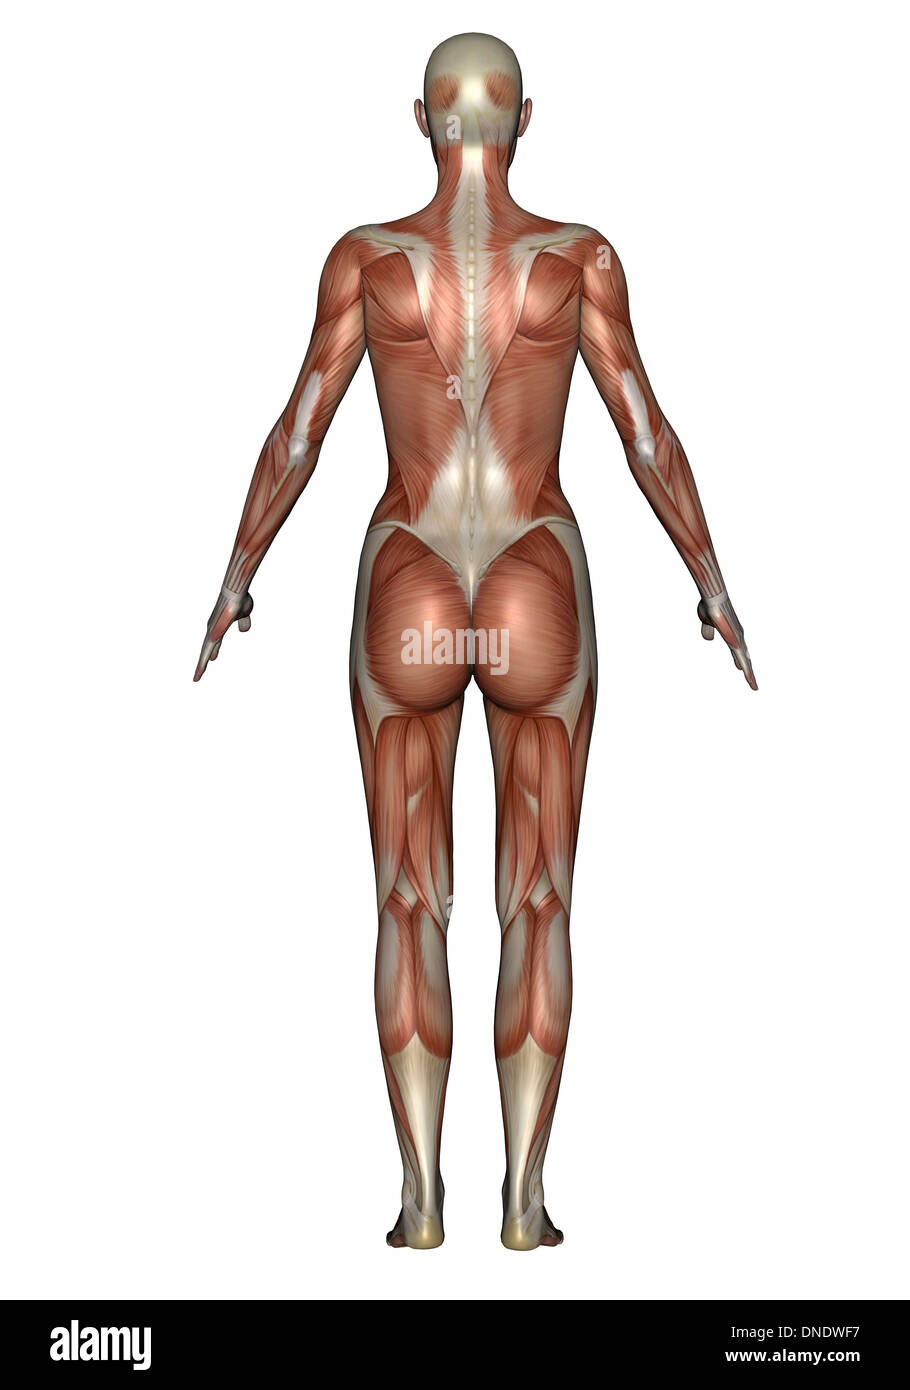 Anatomy Of Female Muscular System Back View Stock Photo 64844283